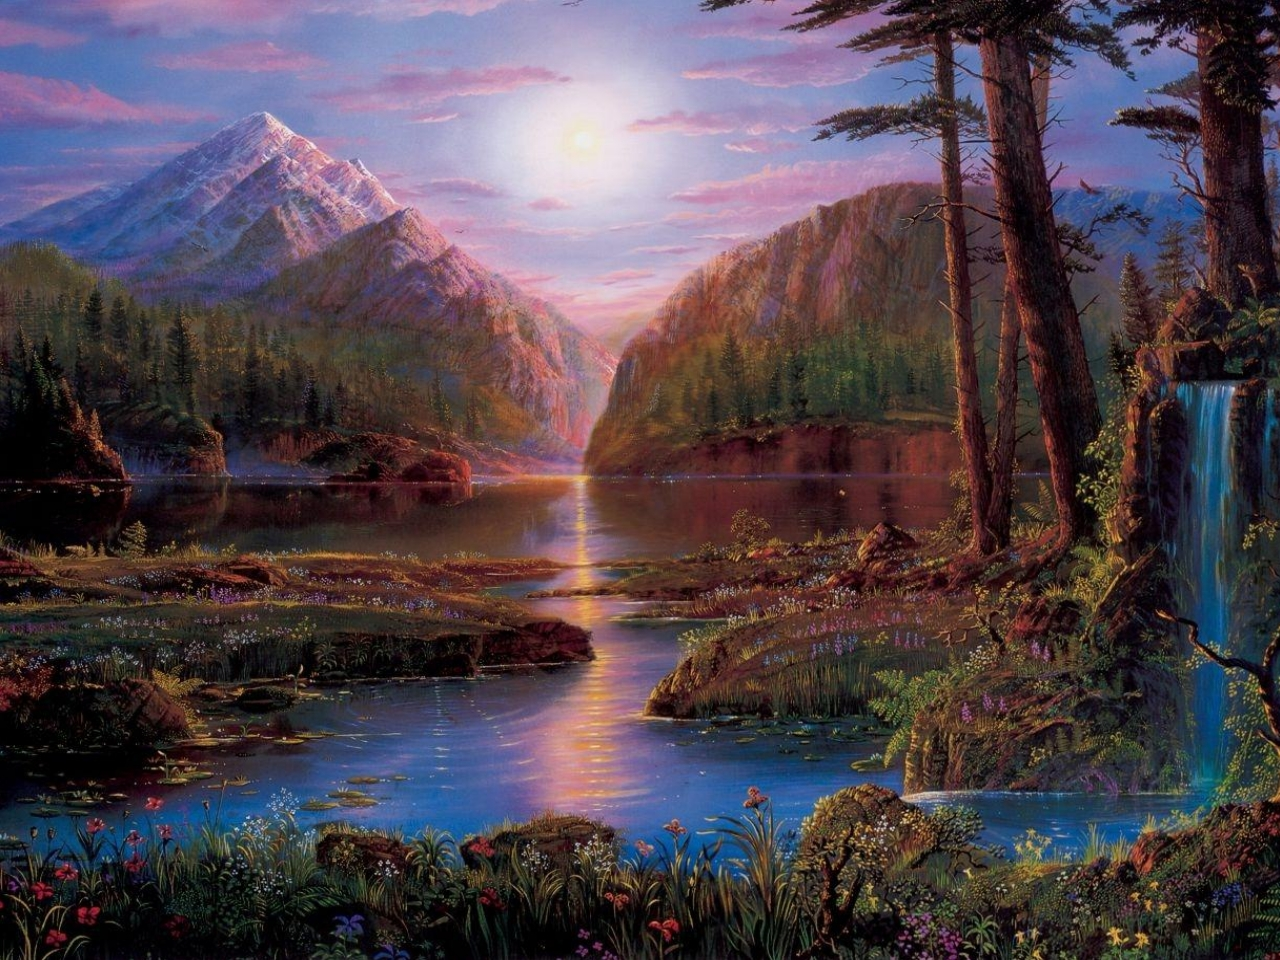 wonderful nature (painting)